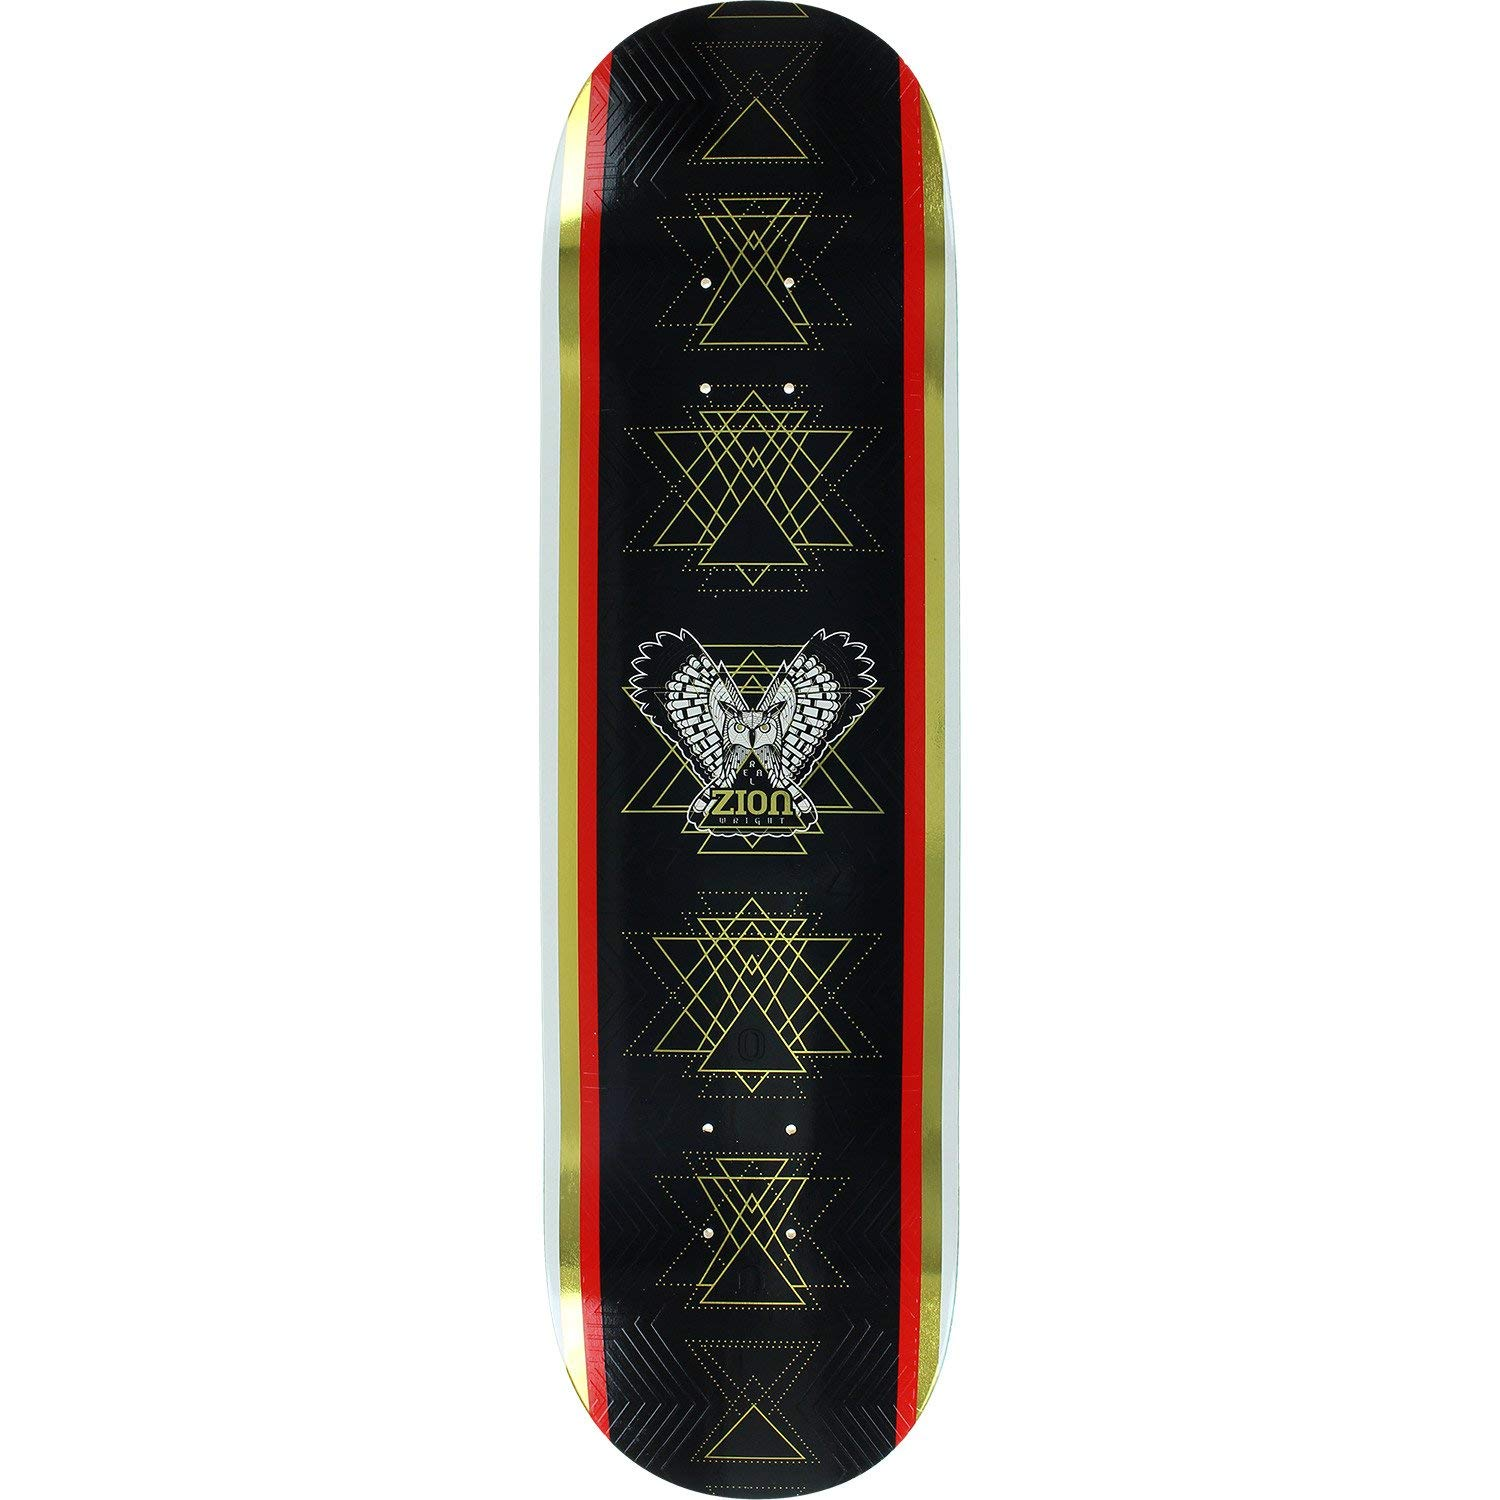 475b5546 Cheap Real Skateboard, find Real Skateboard deals on line at Alibaba.com